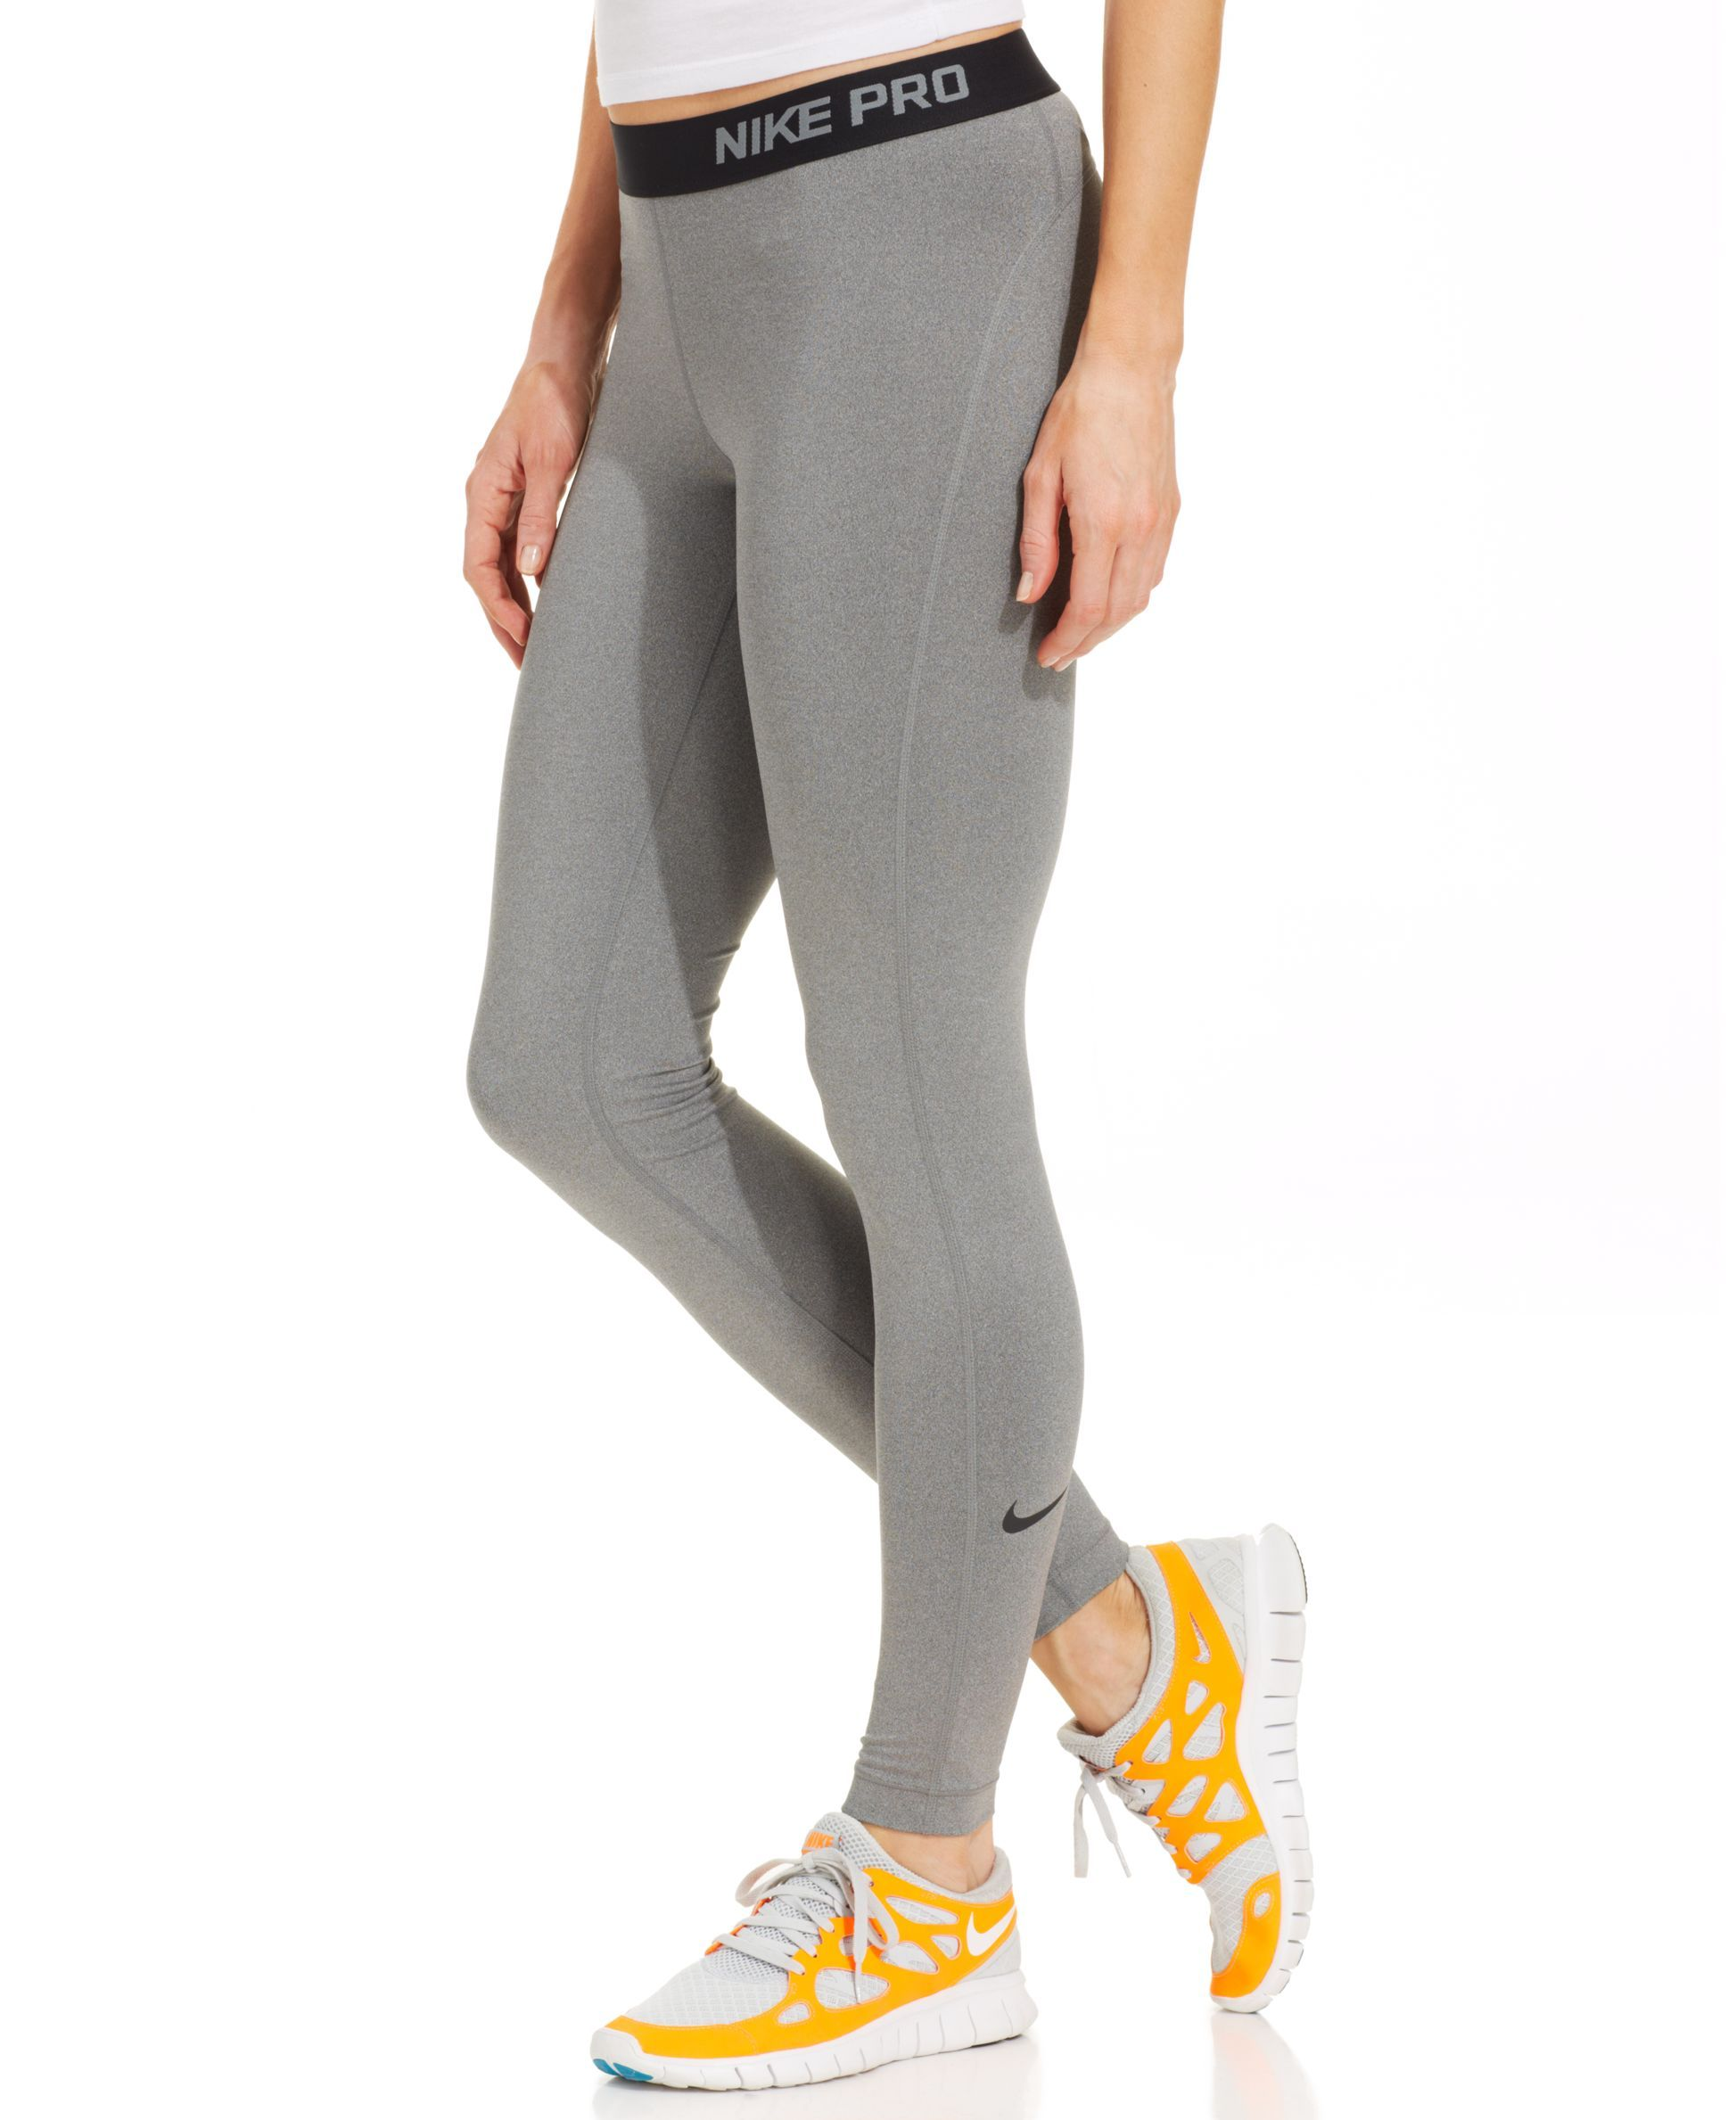 5f31d209f5de17 Nike Pro Dri-FIT Leggings - Pants & Capris - Women - Macy's ...